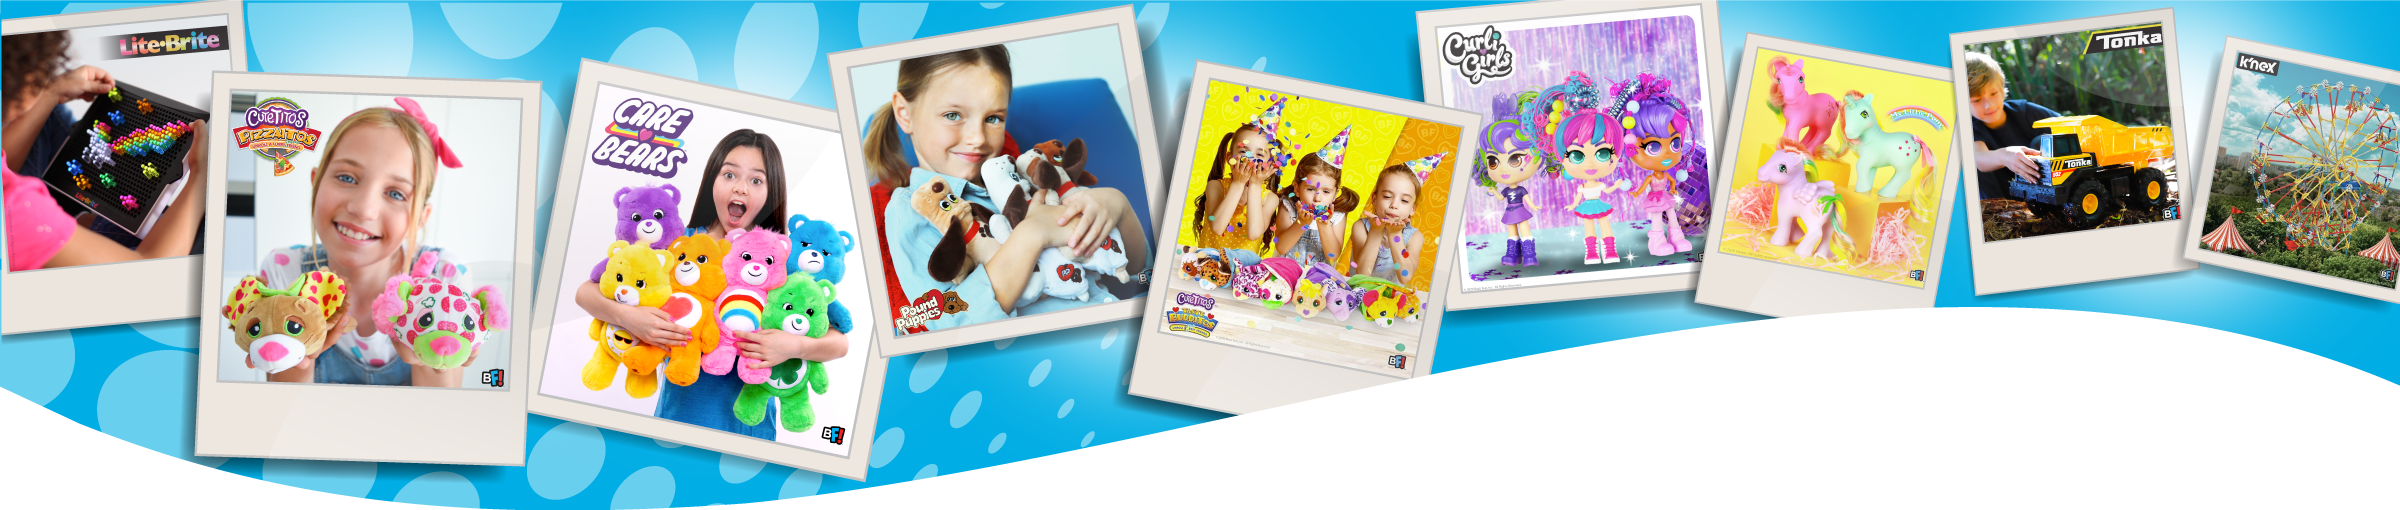 We are creators of fun, experts in play and makers of toys.| News | Basic Fun!